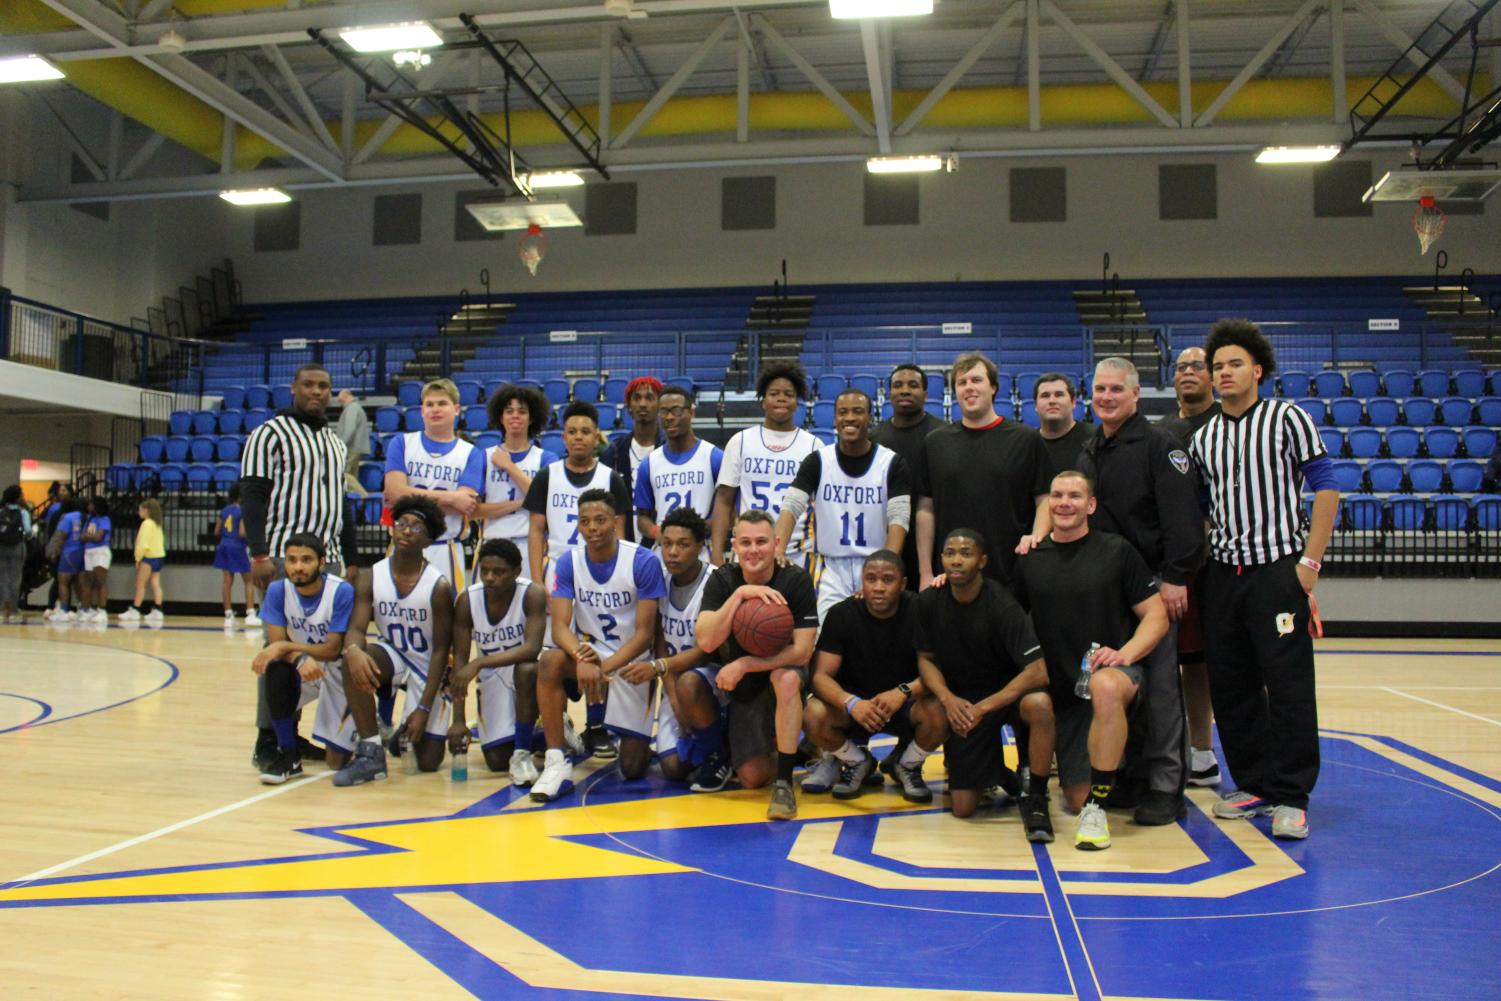 Unified Sports basketball team, Oxford Police Department officers, and the Unified Sports' referees stand and smile after their game. The game resulted in a tie with a score of 40-40 after game tying threes were scored in the final seconds.